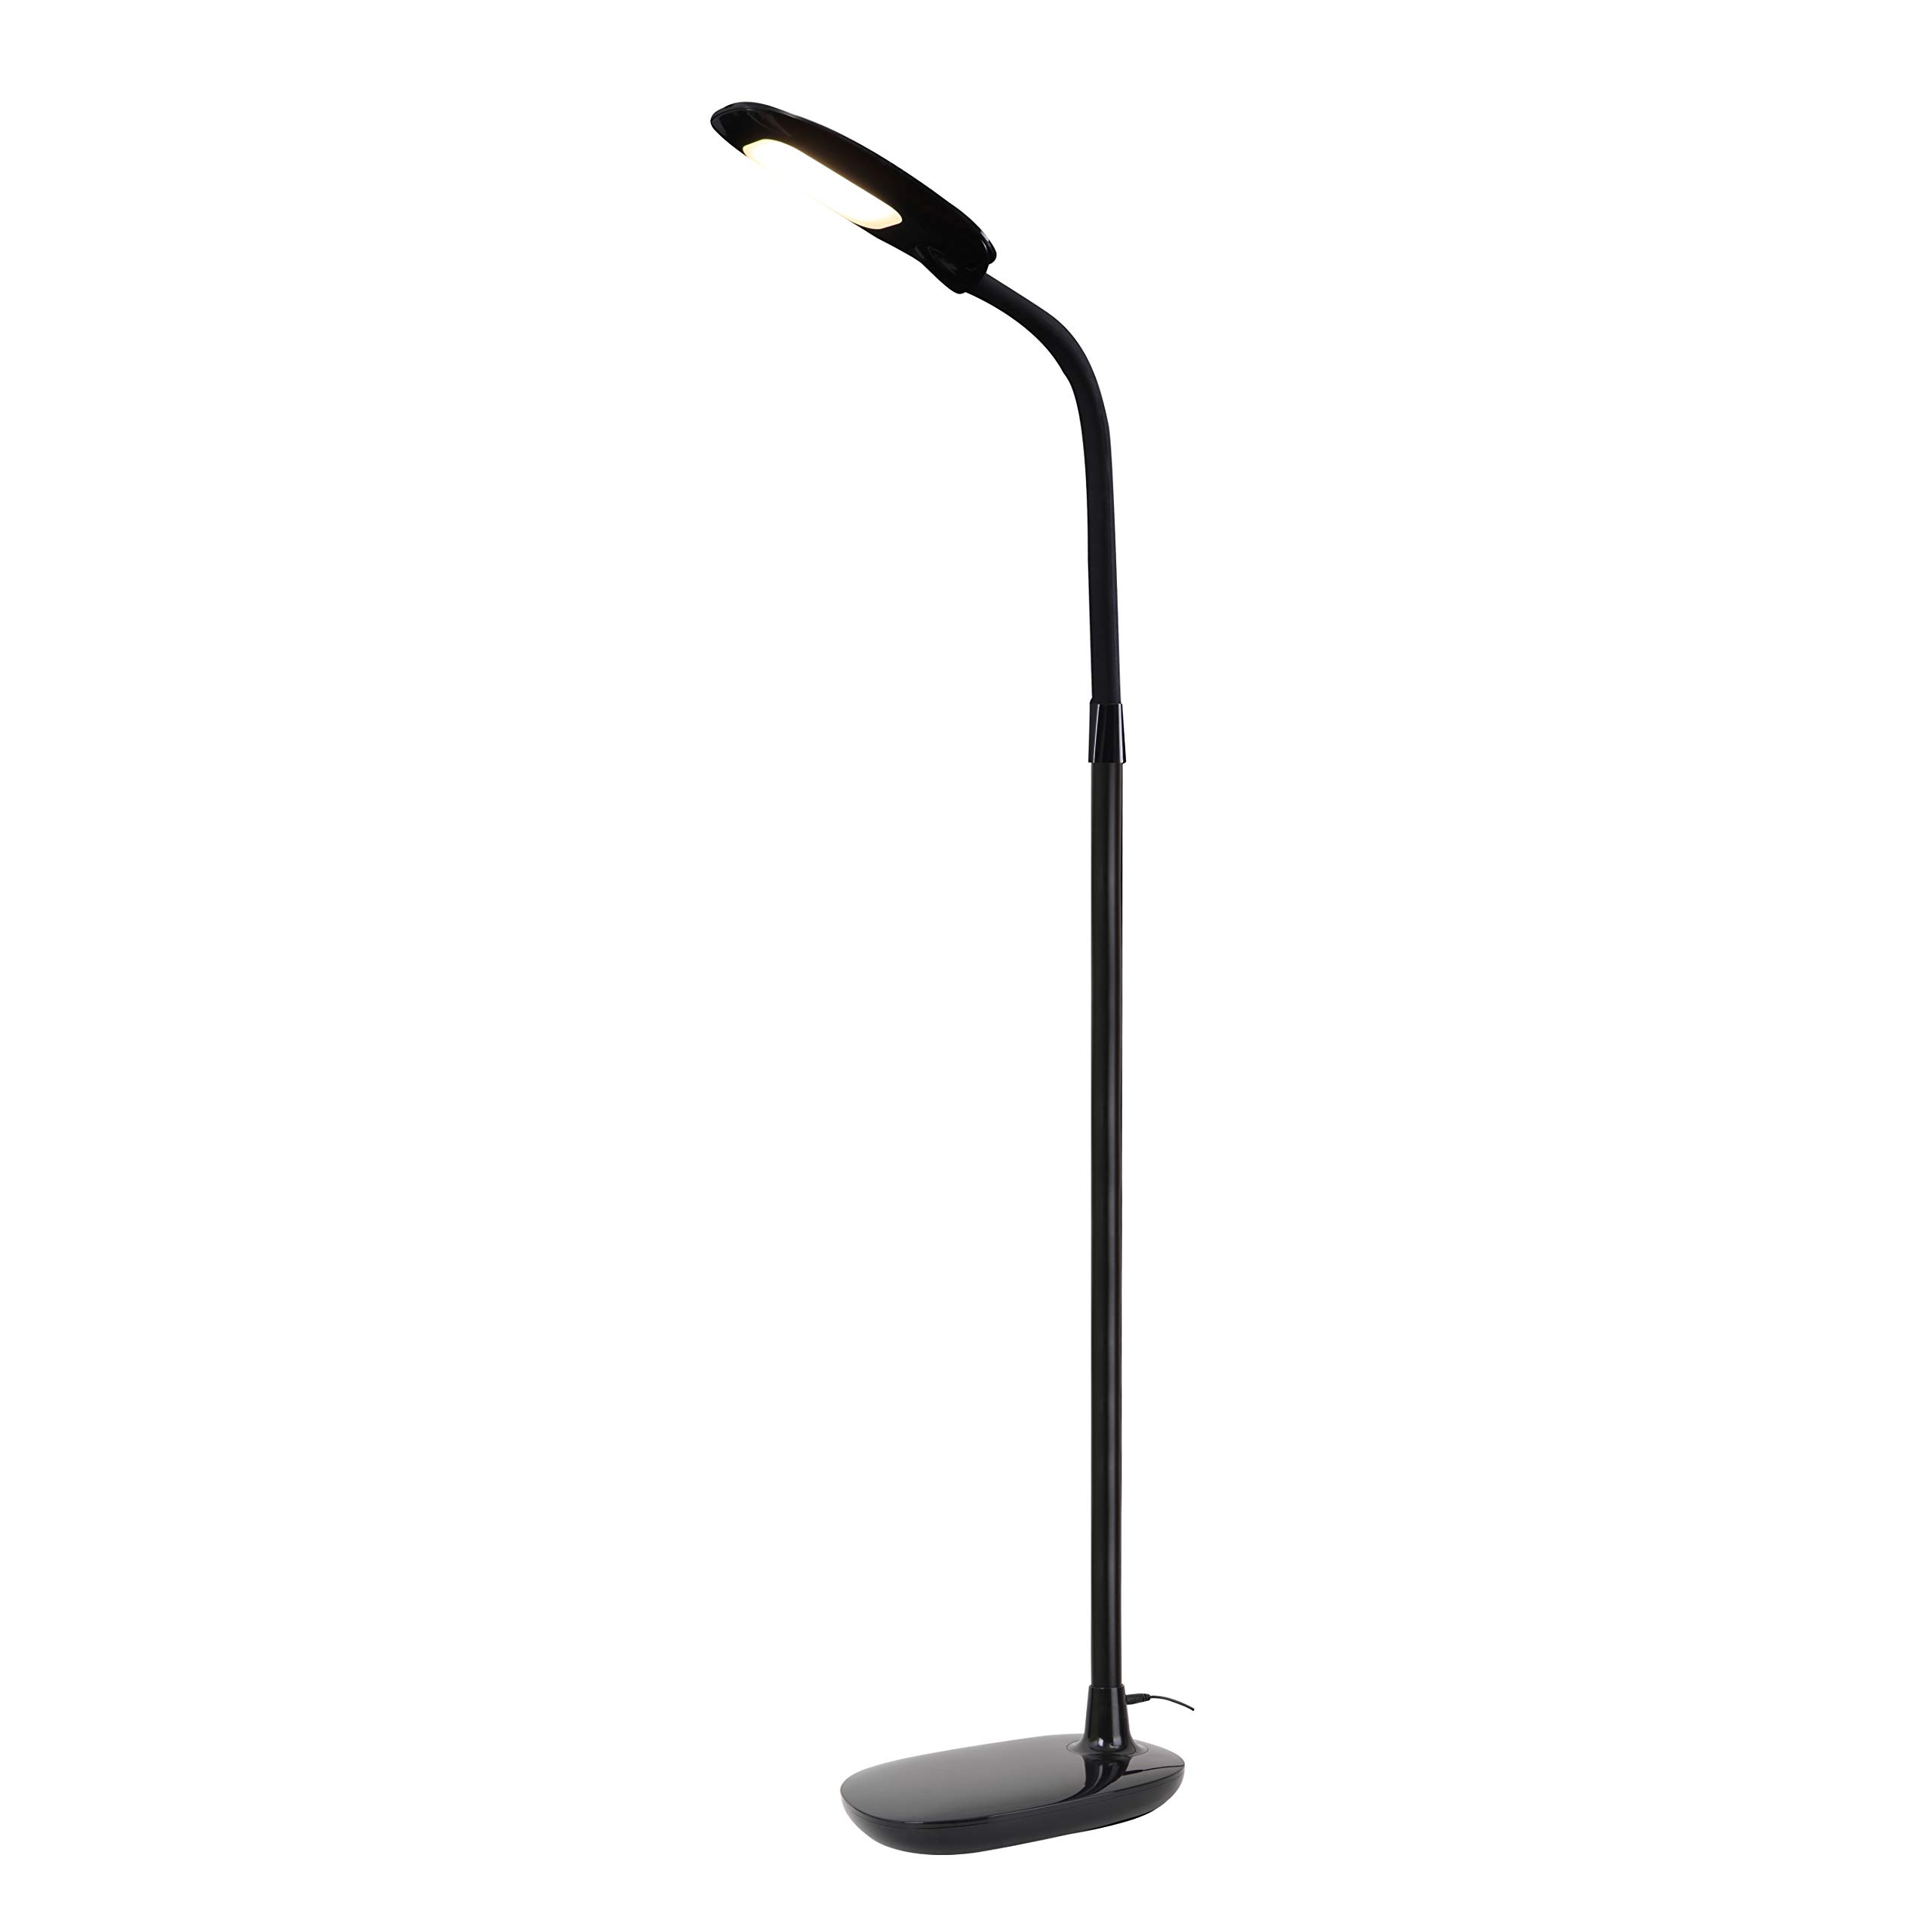 Trae RAFI LED Floor Lamp for Reading - Dimmable Adjustable Gooseneck Standing Lamp, Touch Control 3 Color Modes, 4 Brightness Dimmer Levels, Memory Function Flexible Torchlight Floor Light